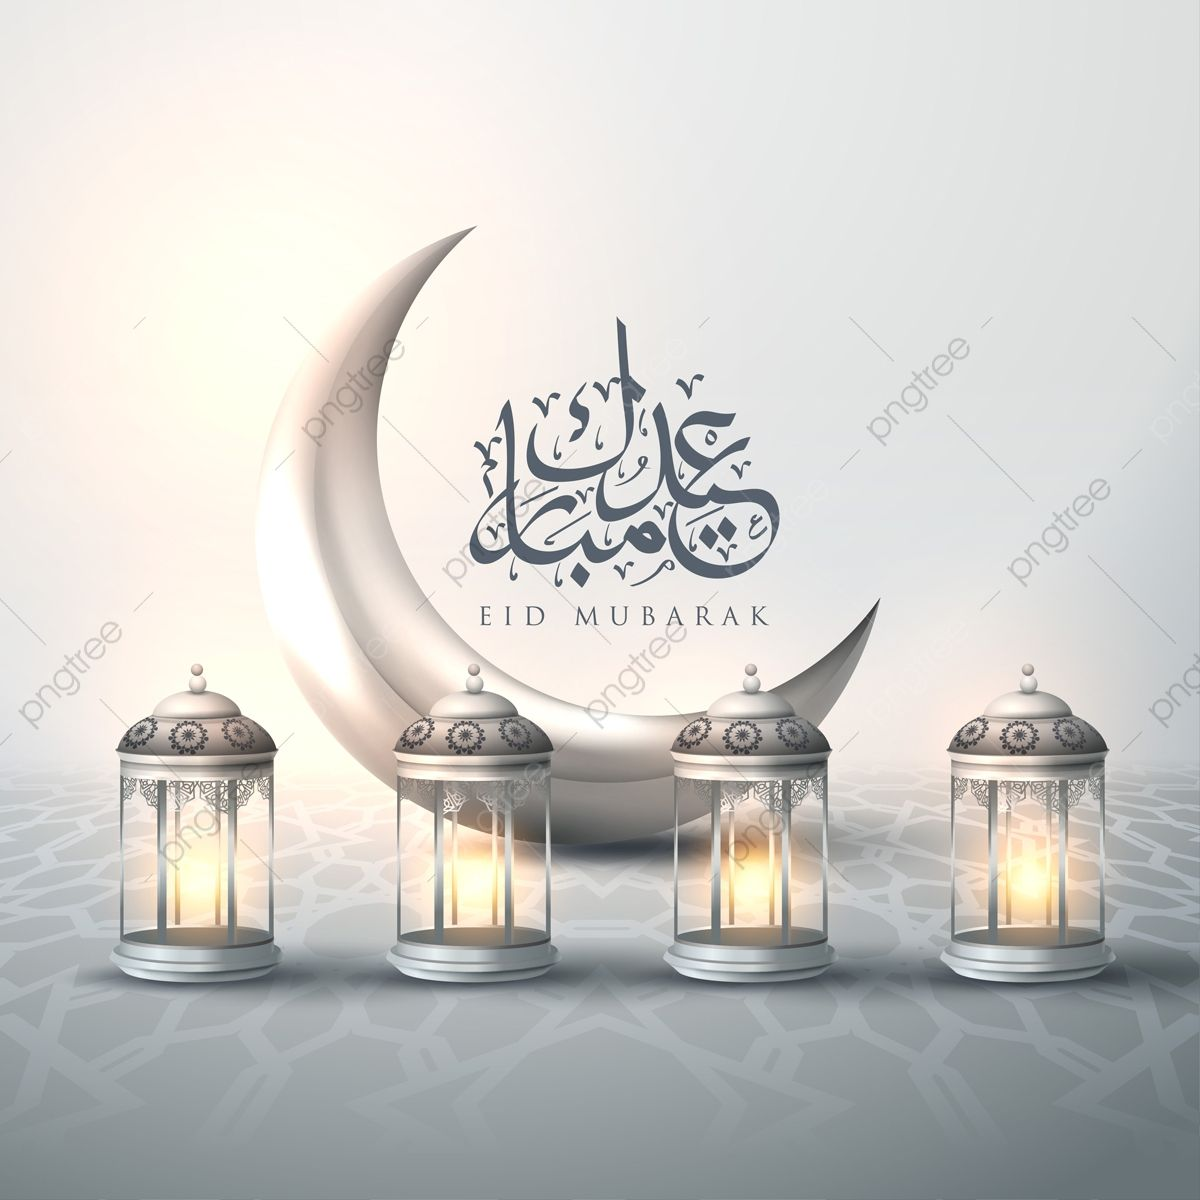 Greeting Card Template Islamic Vector Design For Eid Mubarak Eid Mubarak Card Calligraphy Arabic Png And Vector With Transparent Background For Free Download Eid Mubarak Greeting Cards Eid Mubarak Greetings Eid